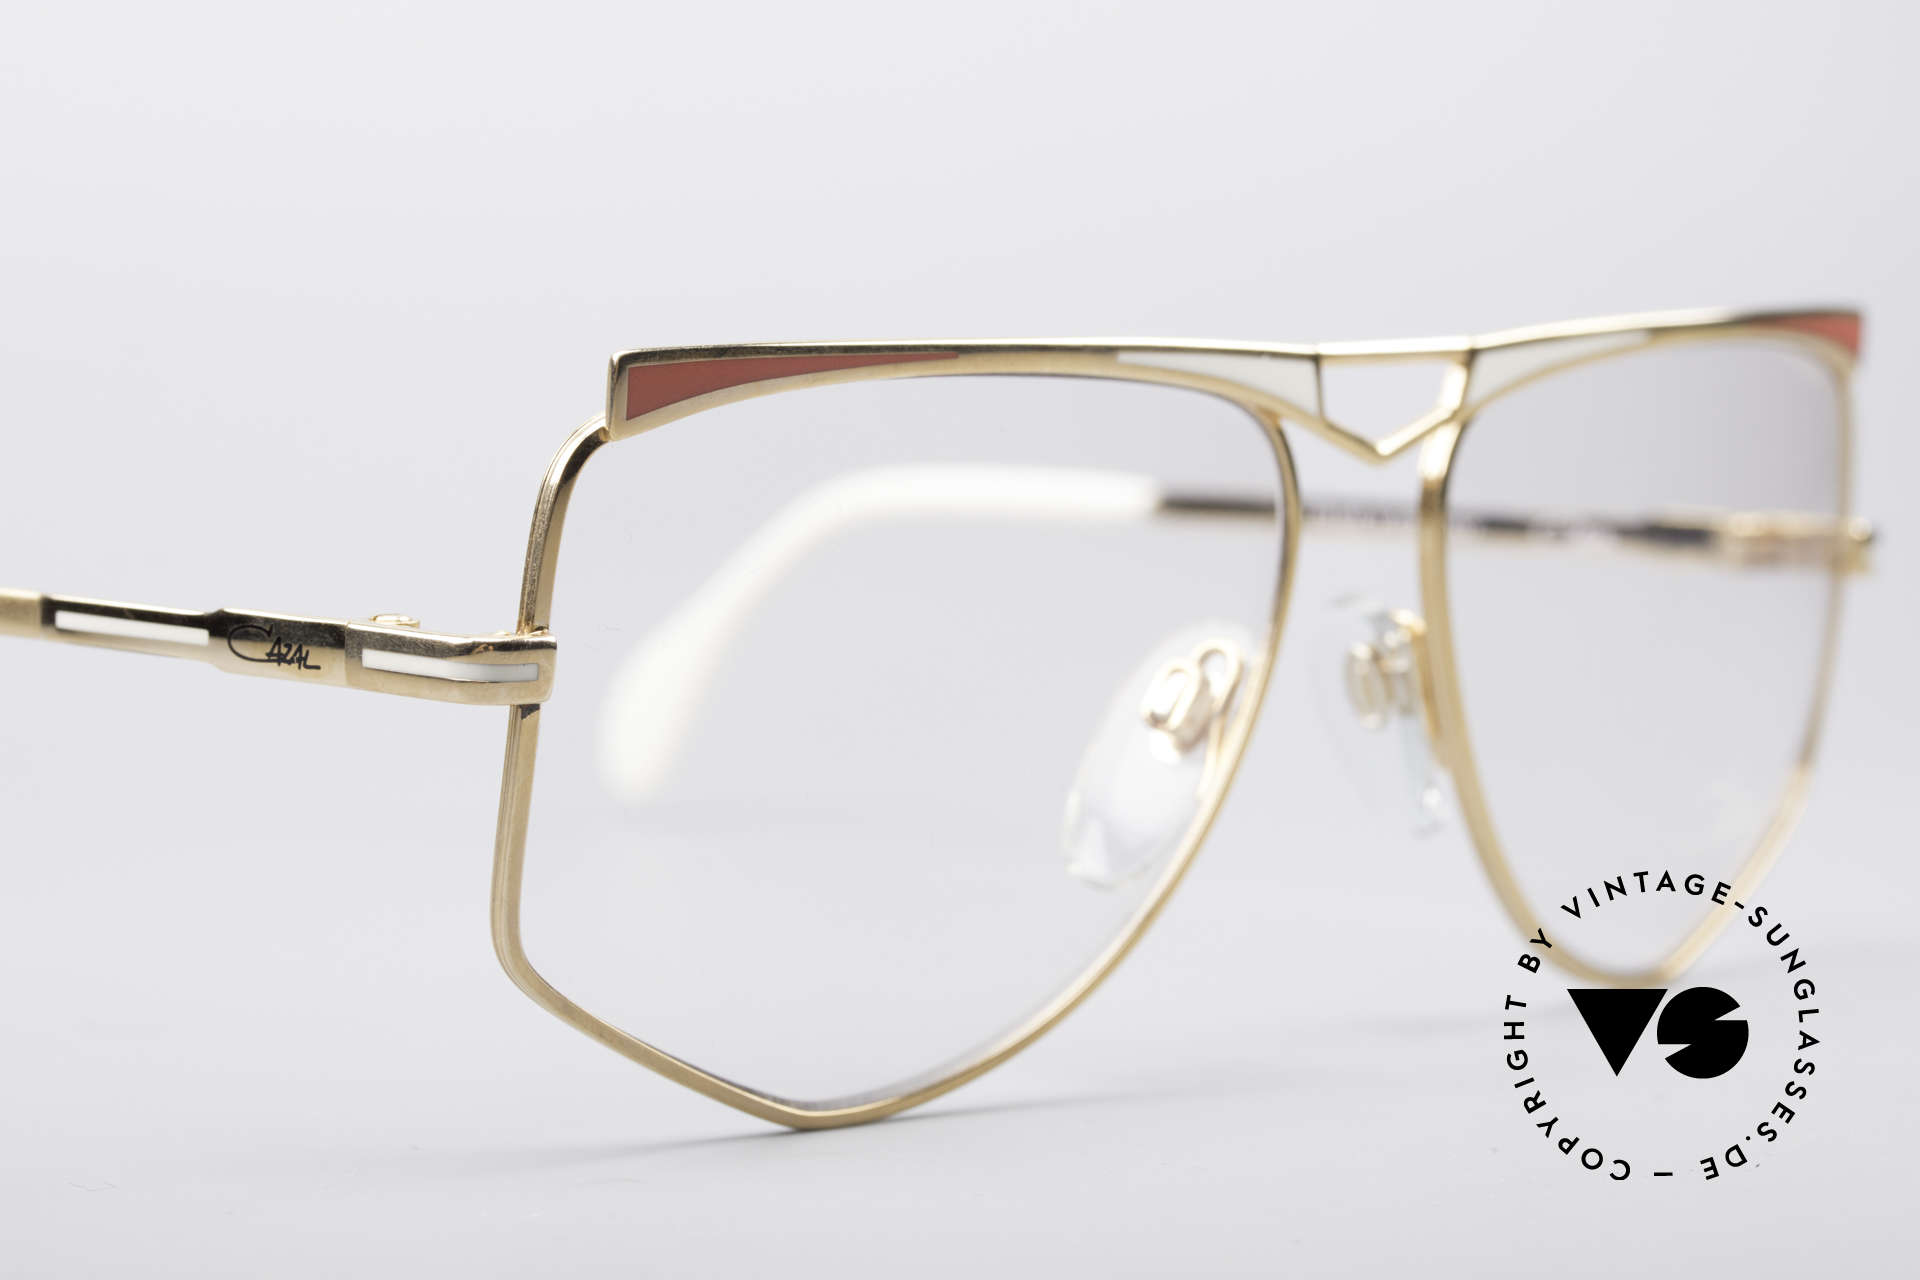 Cazal 227 True Vintage No Retro Frame, 1st class craftsmanship (frame made in West Germany), Made for Women